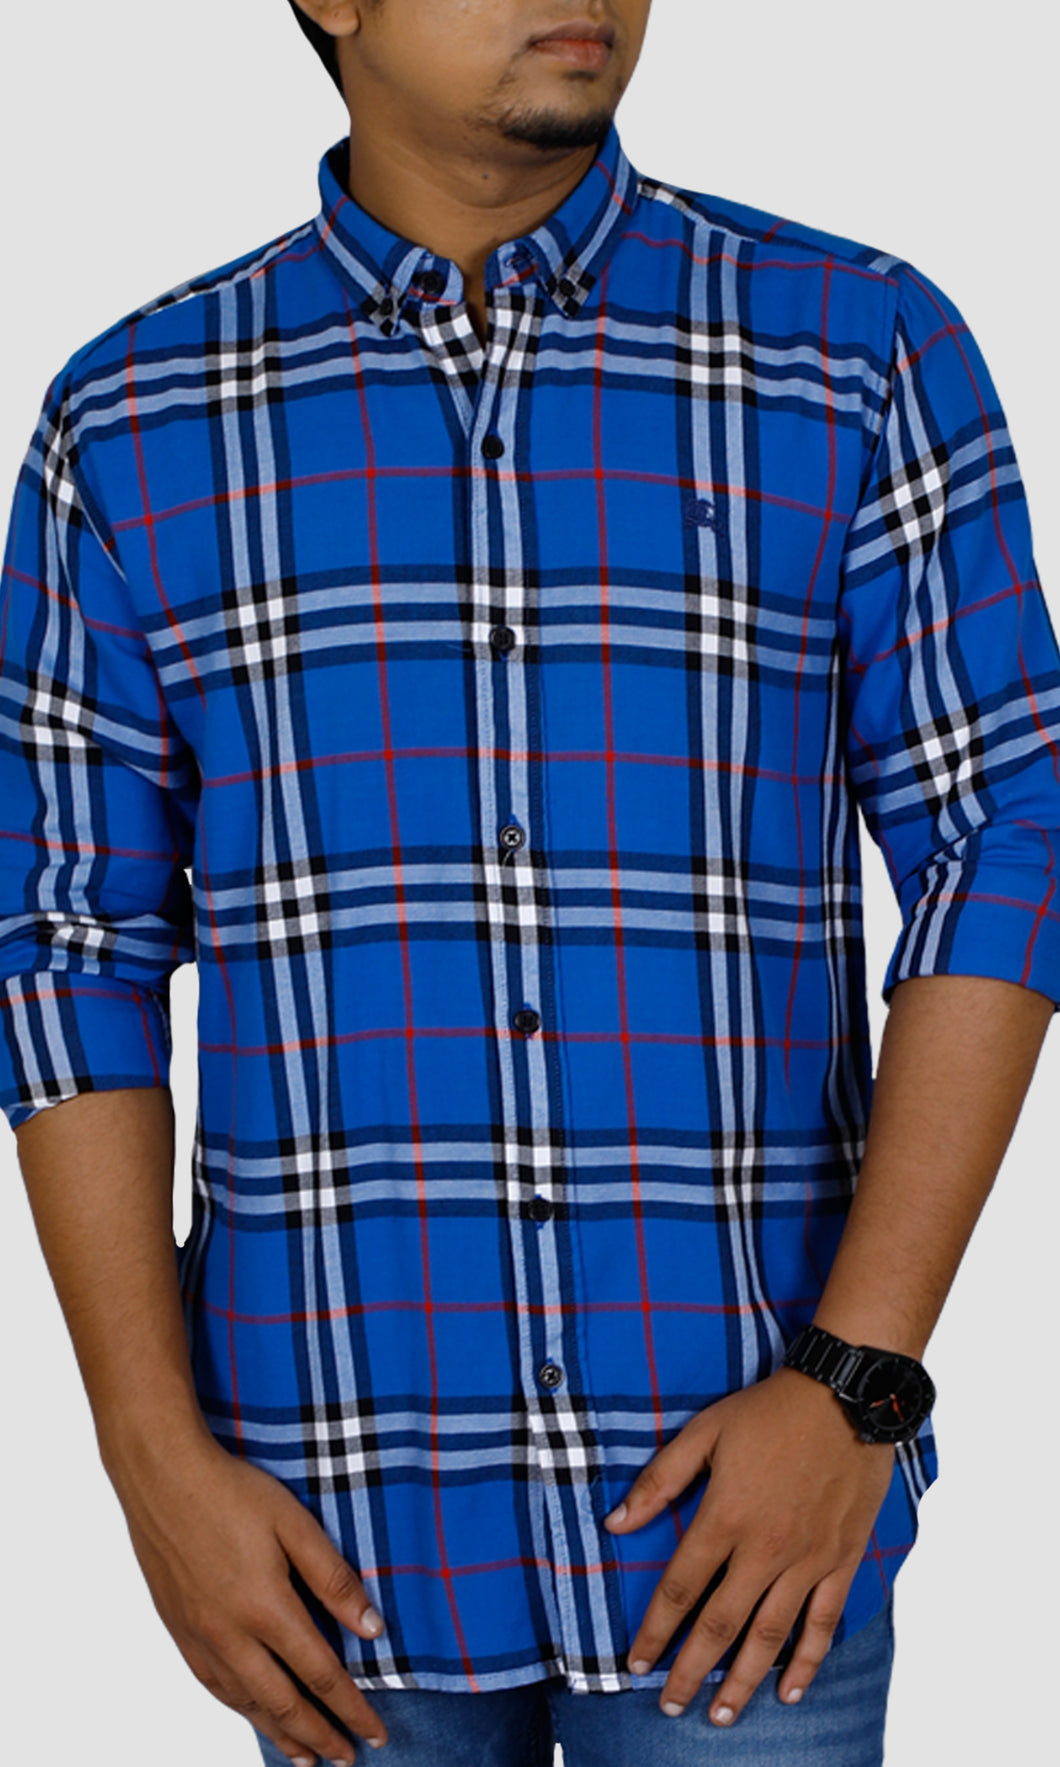 Men Big Checked Slim Fit Casual Shirts